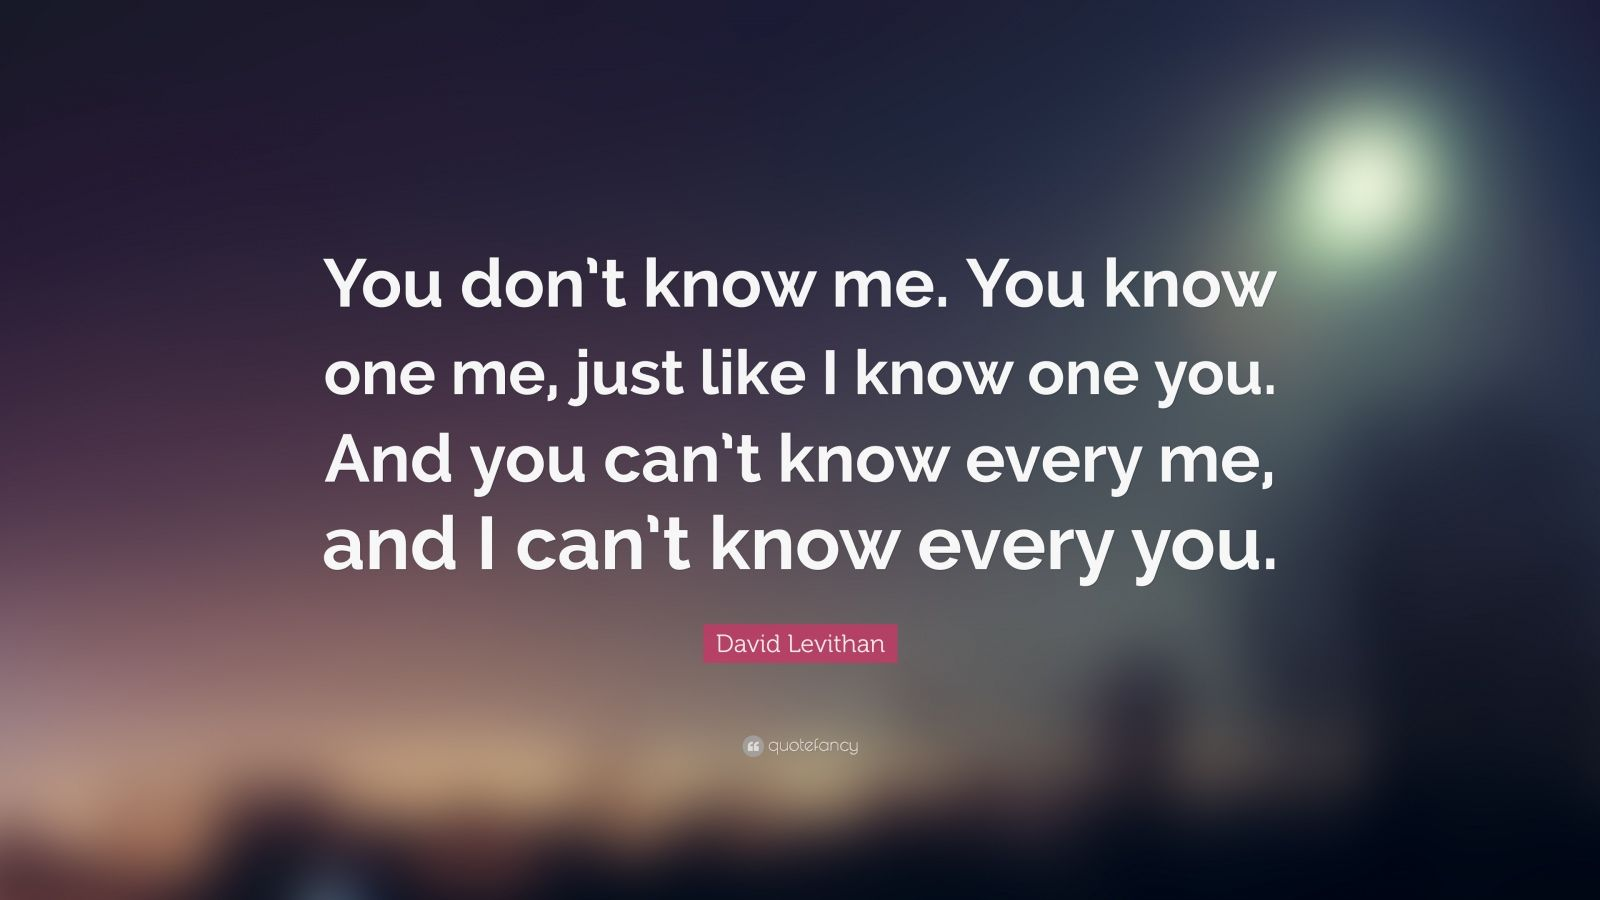 "David Levithan Quote: ""You don't know me. You know one me, just like I know one you. And you can't know every me, and I can't know every you."""